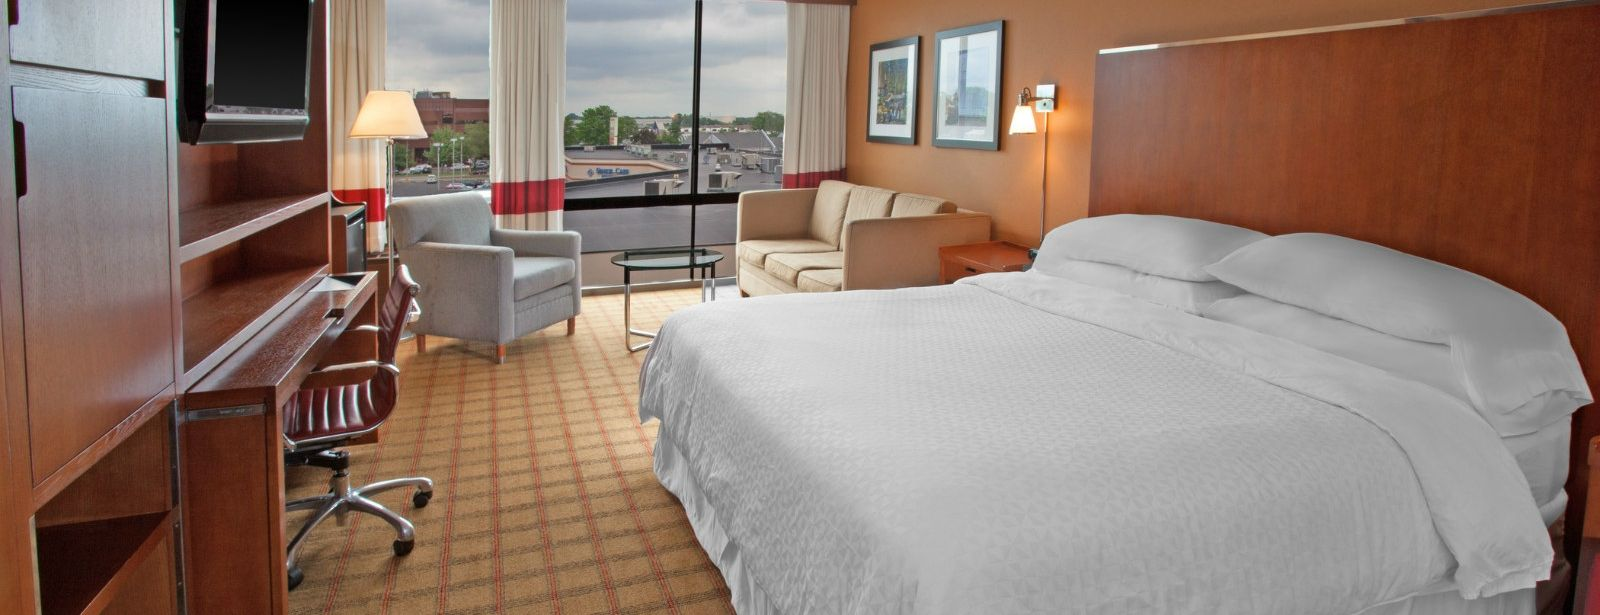 Philadelphia Accommodations - Accessible Guest Room